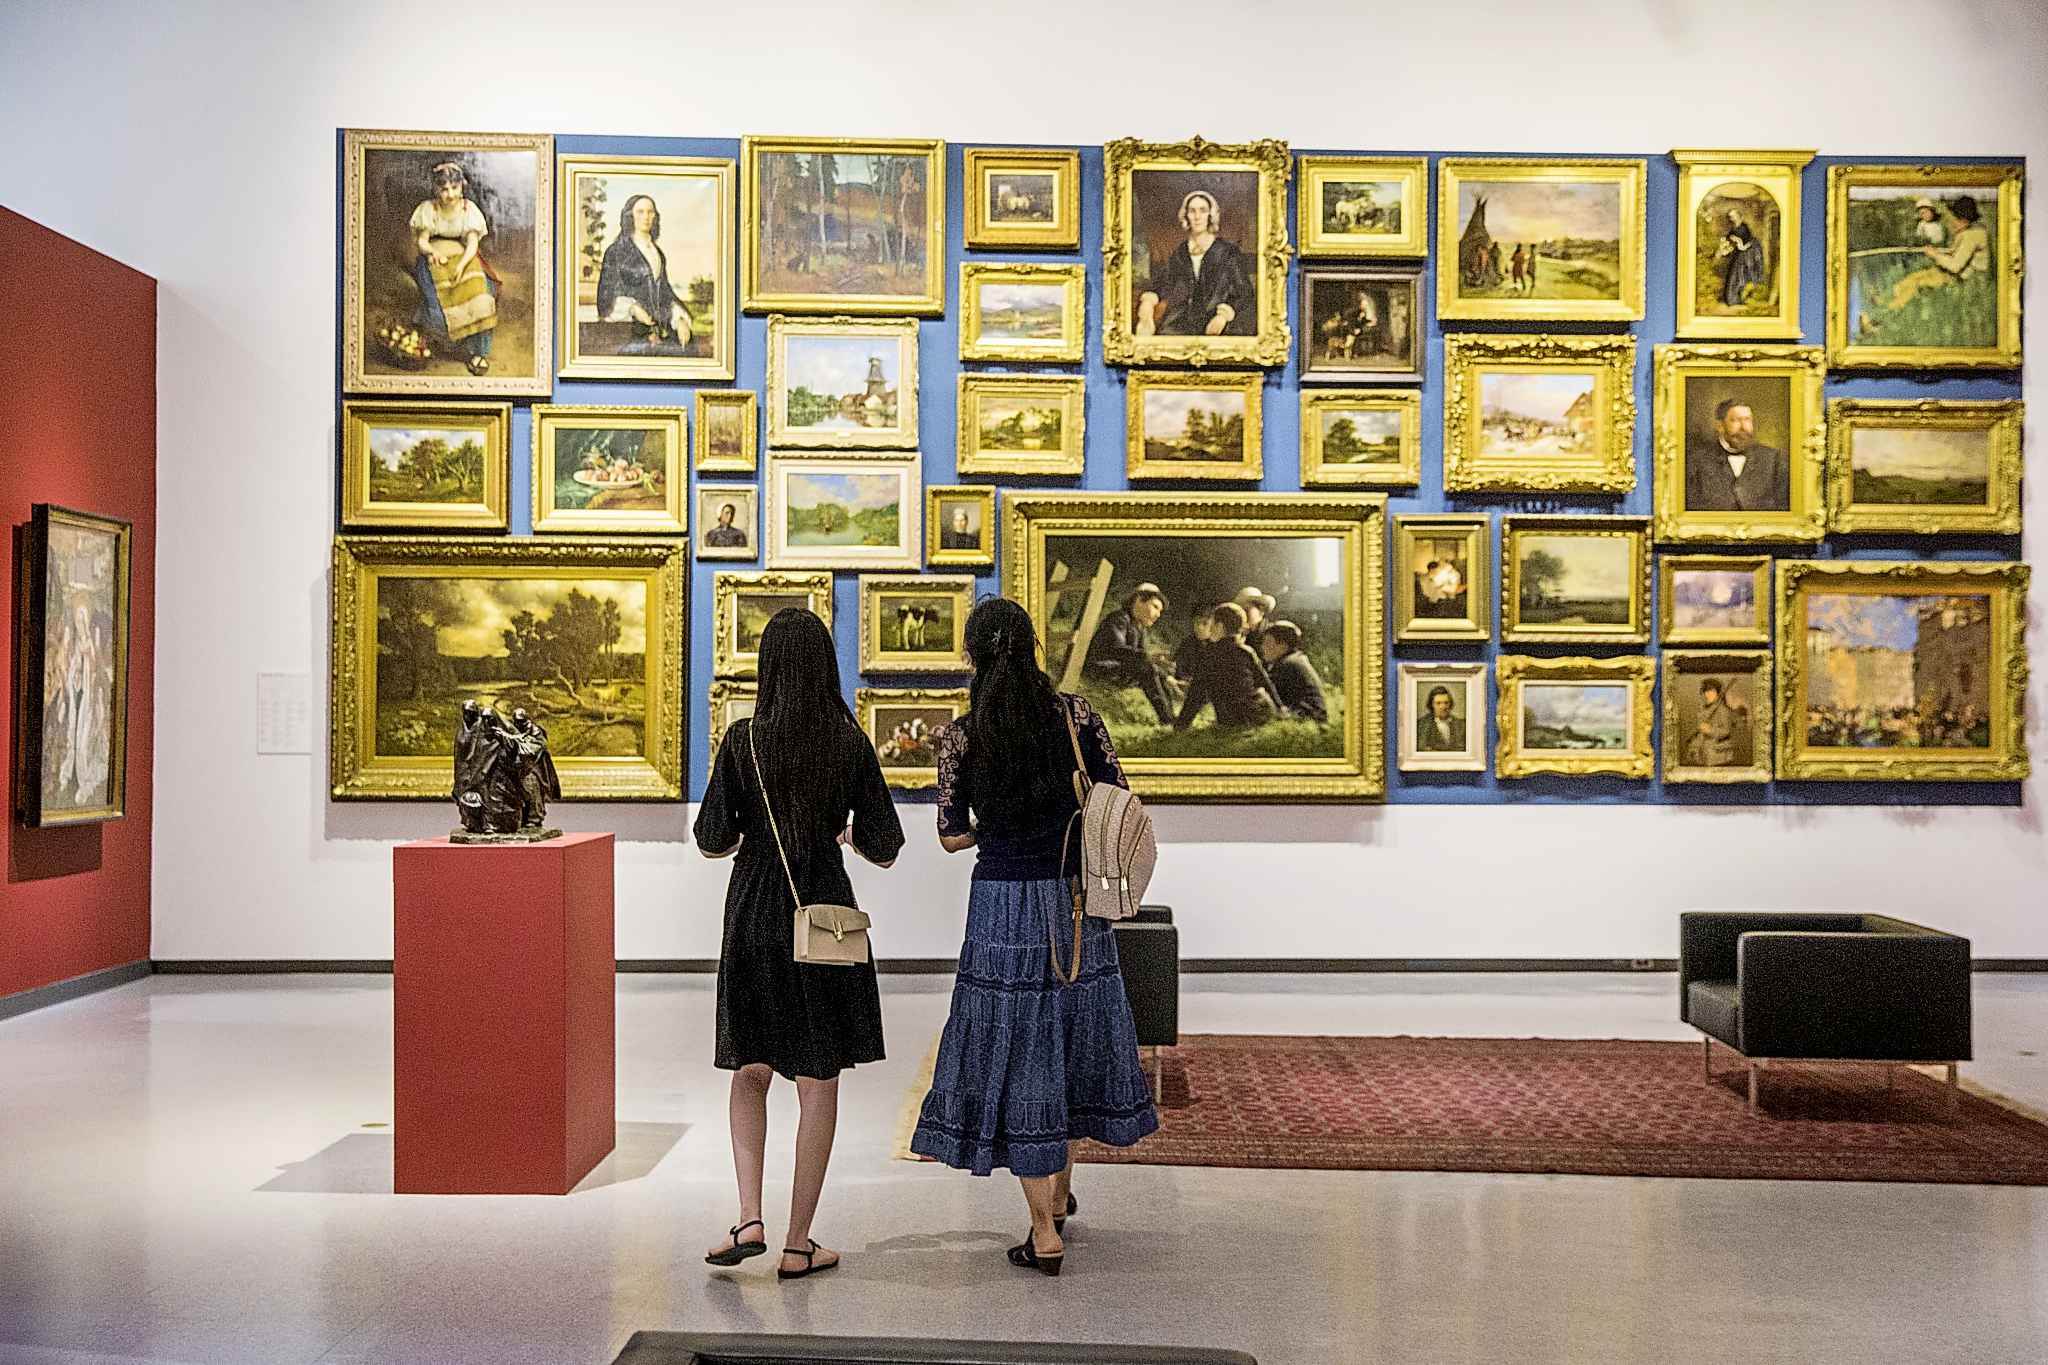 Linjie Huang (left) and her mom, Xuelian Zhang, look at art at the WAG. Even though they've lived in Winnipeg for two years, this was their first visit to the gallery. (Mikaela MacKenzie / Winnipeg Free Press)</p>